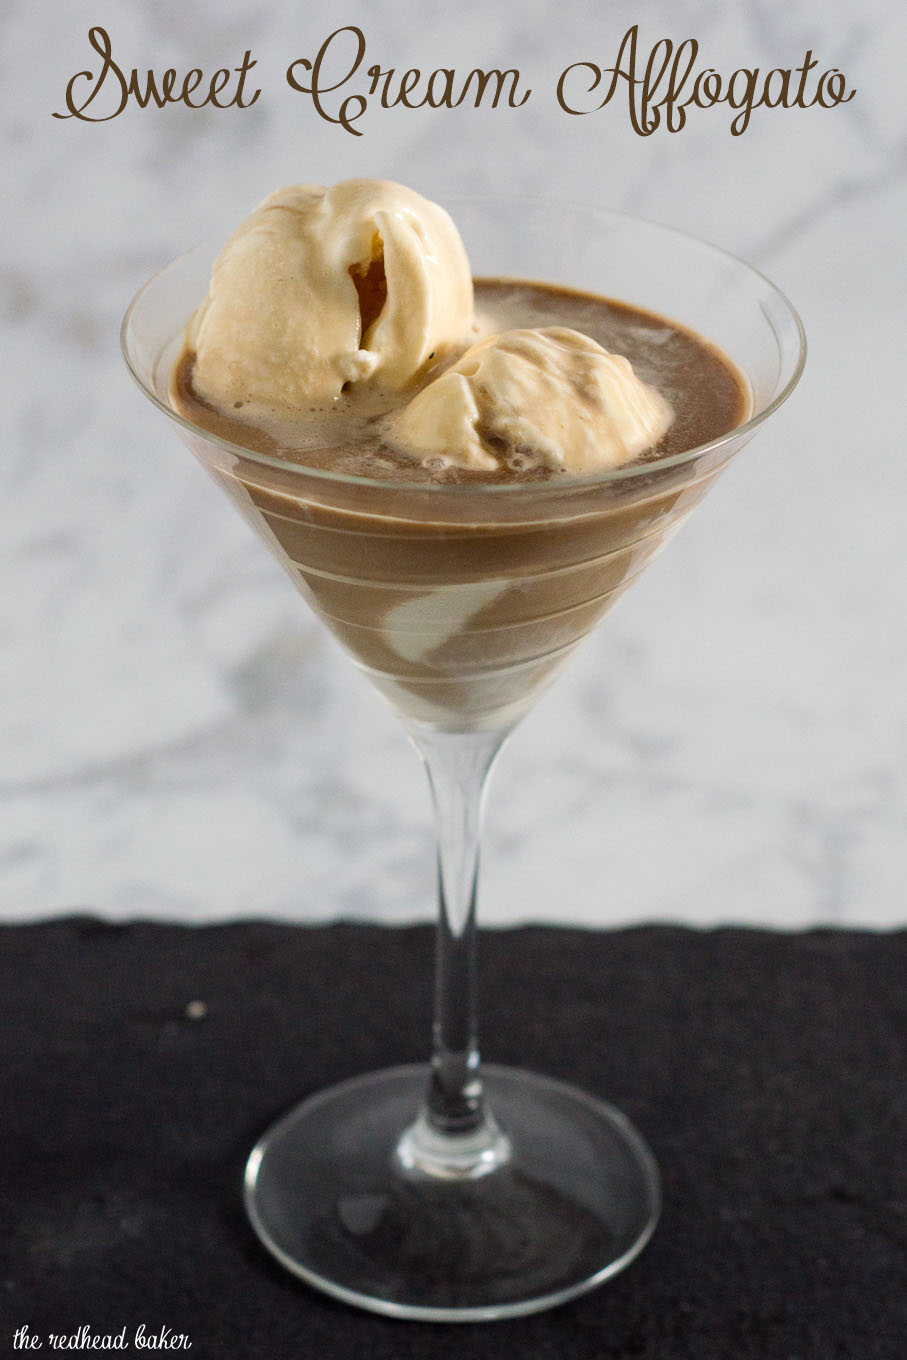 Sweet cream affogato is a simple yet decadent Italian dessert where espresso is poured over ice cream or gelato. Buon appetito!